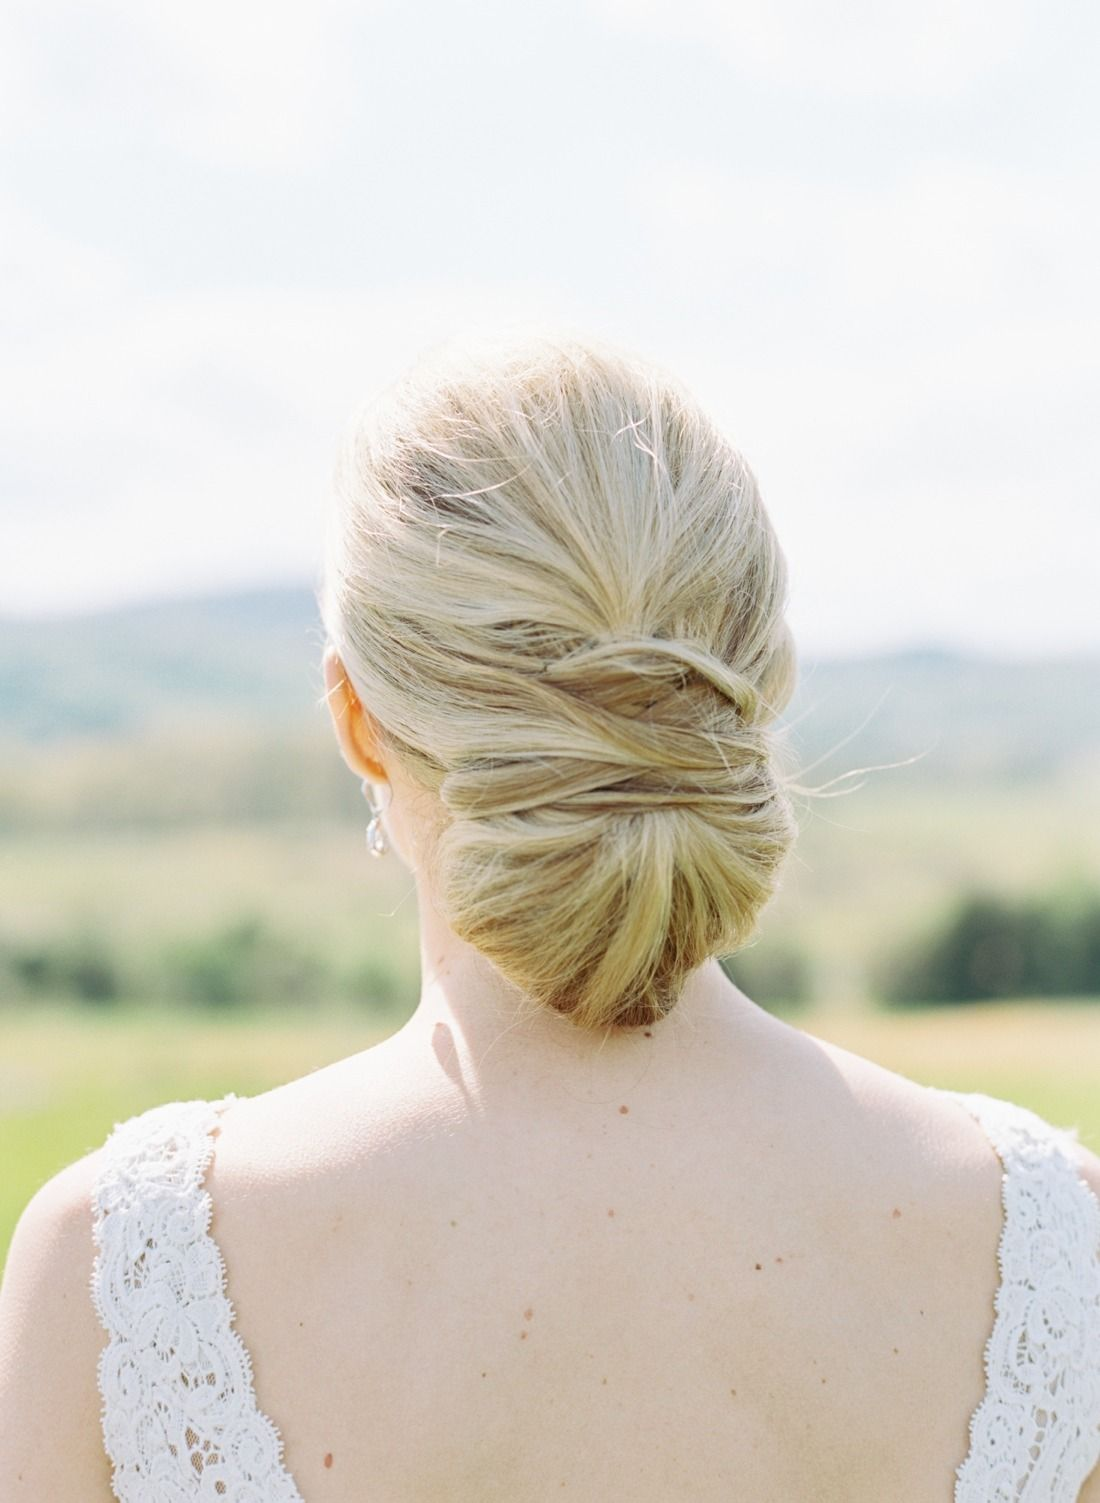 Coiffure Mariage Simple Et Chic Preppy Spring Charlottesville Wedding Coiffure